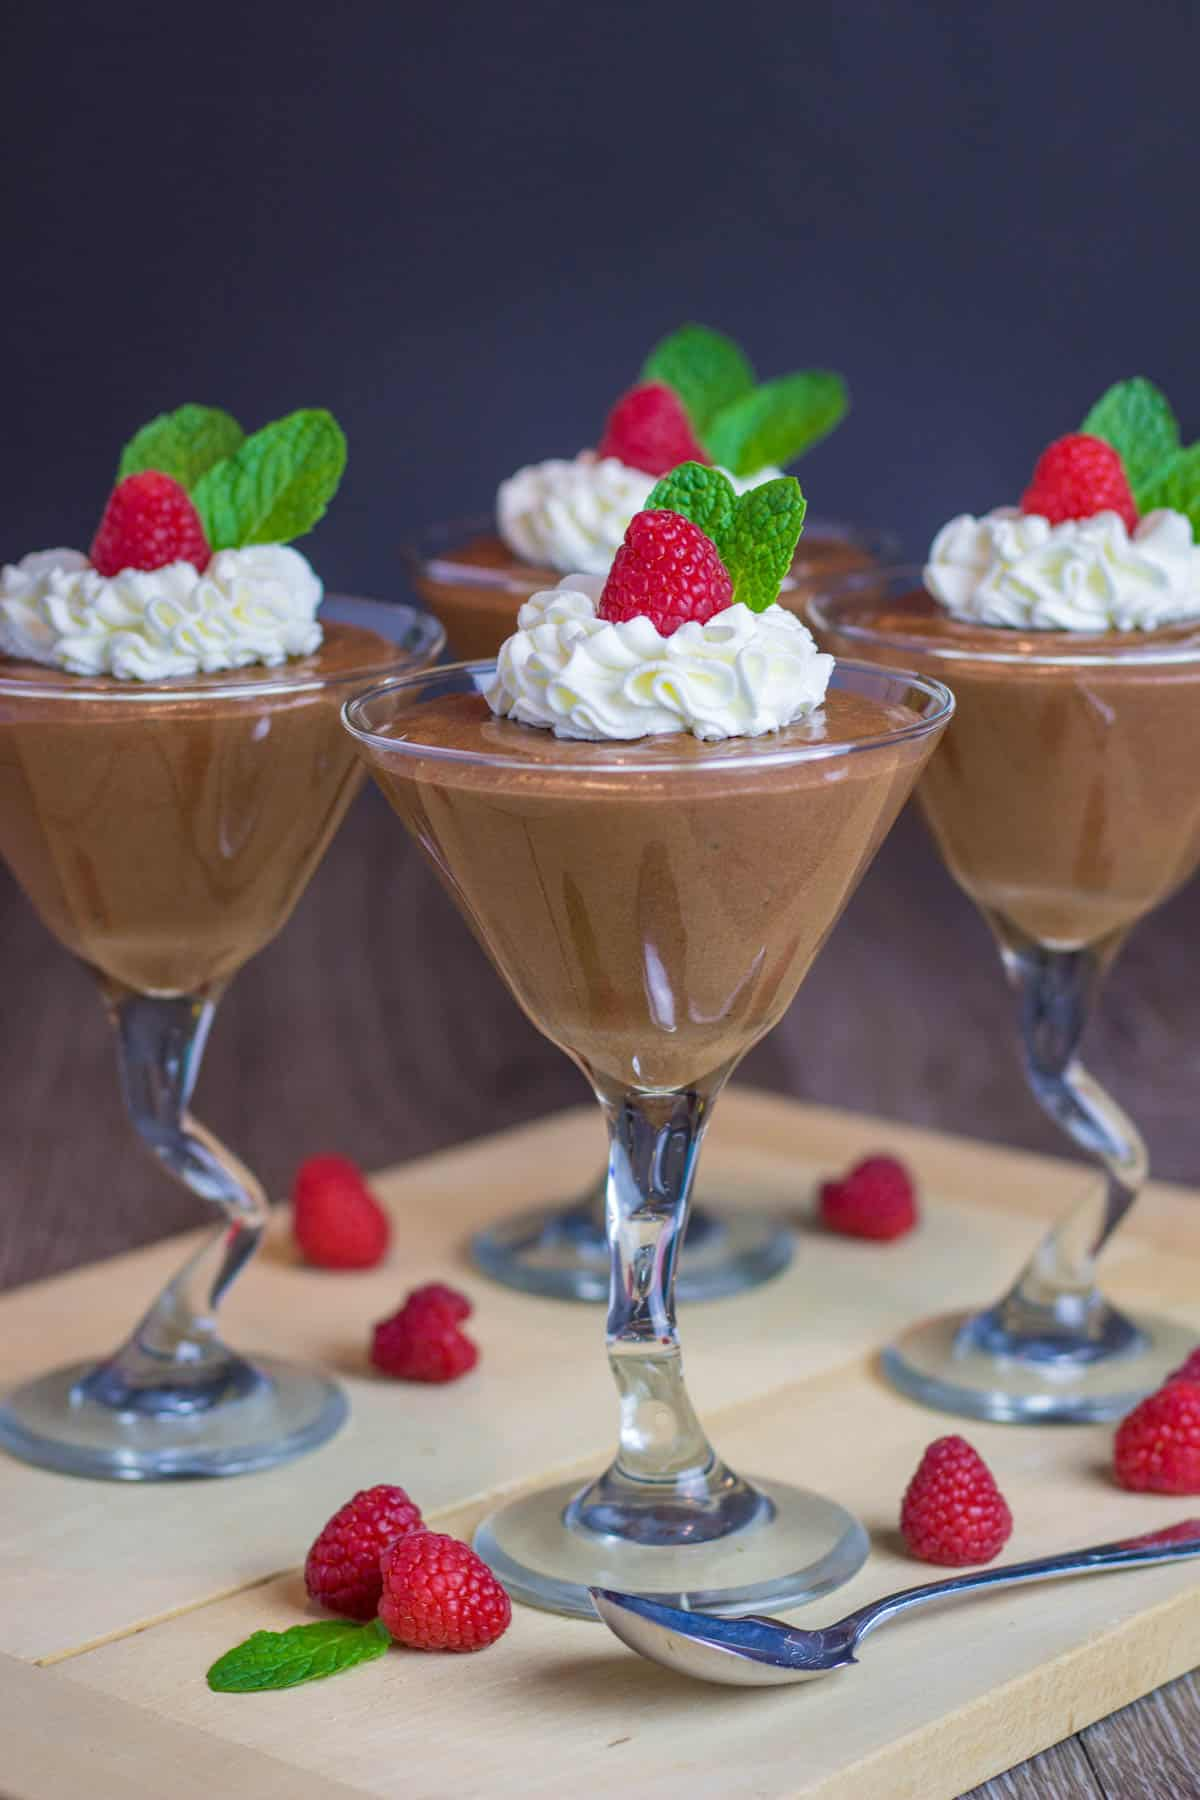 Chocolate mousse in a glass, toped with whipped cream and raspberry.